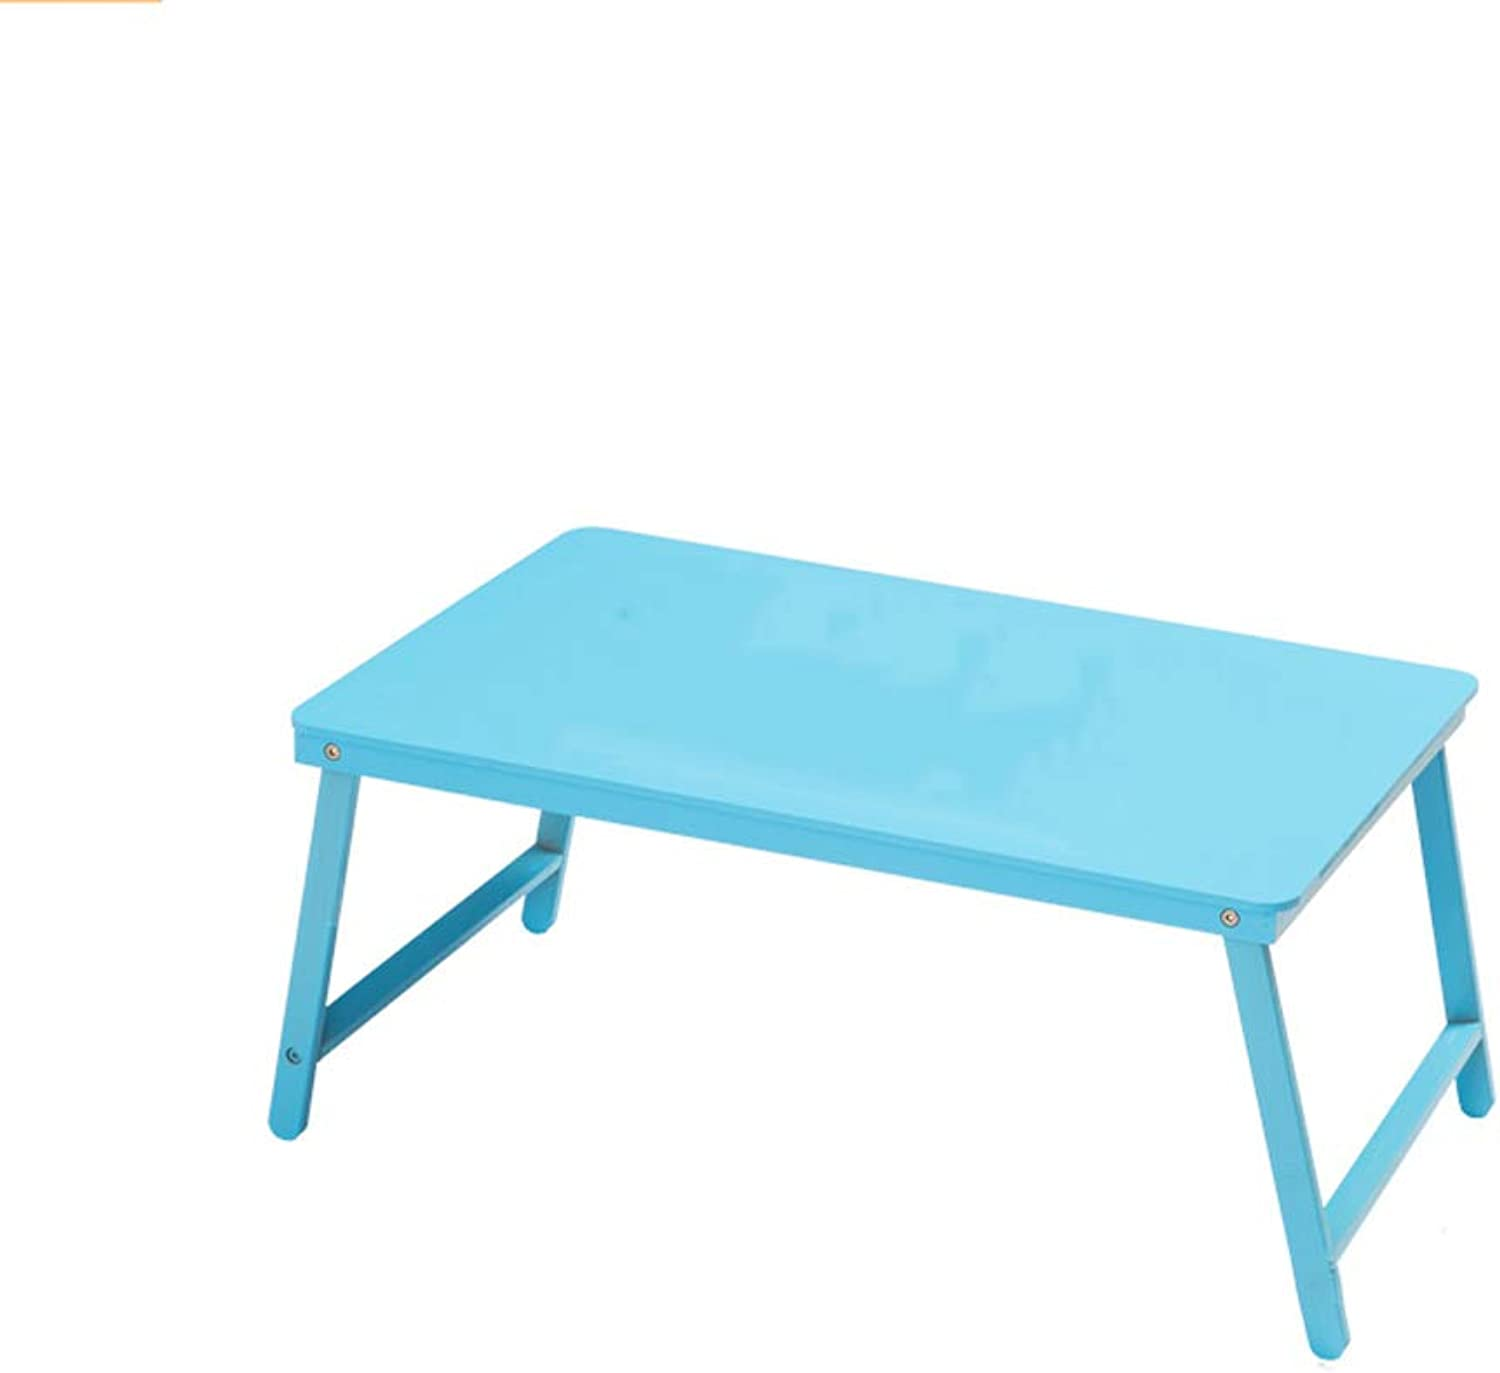 YAXIAO-table Folding Laptop Desk Bed with Small Table Dormitory Lazy Simple Desk Study Table bluee 27x39x60cm